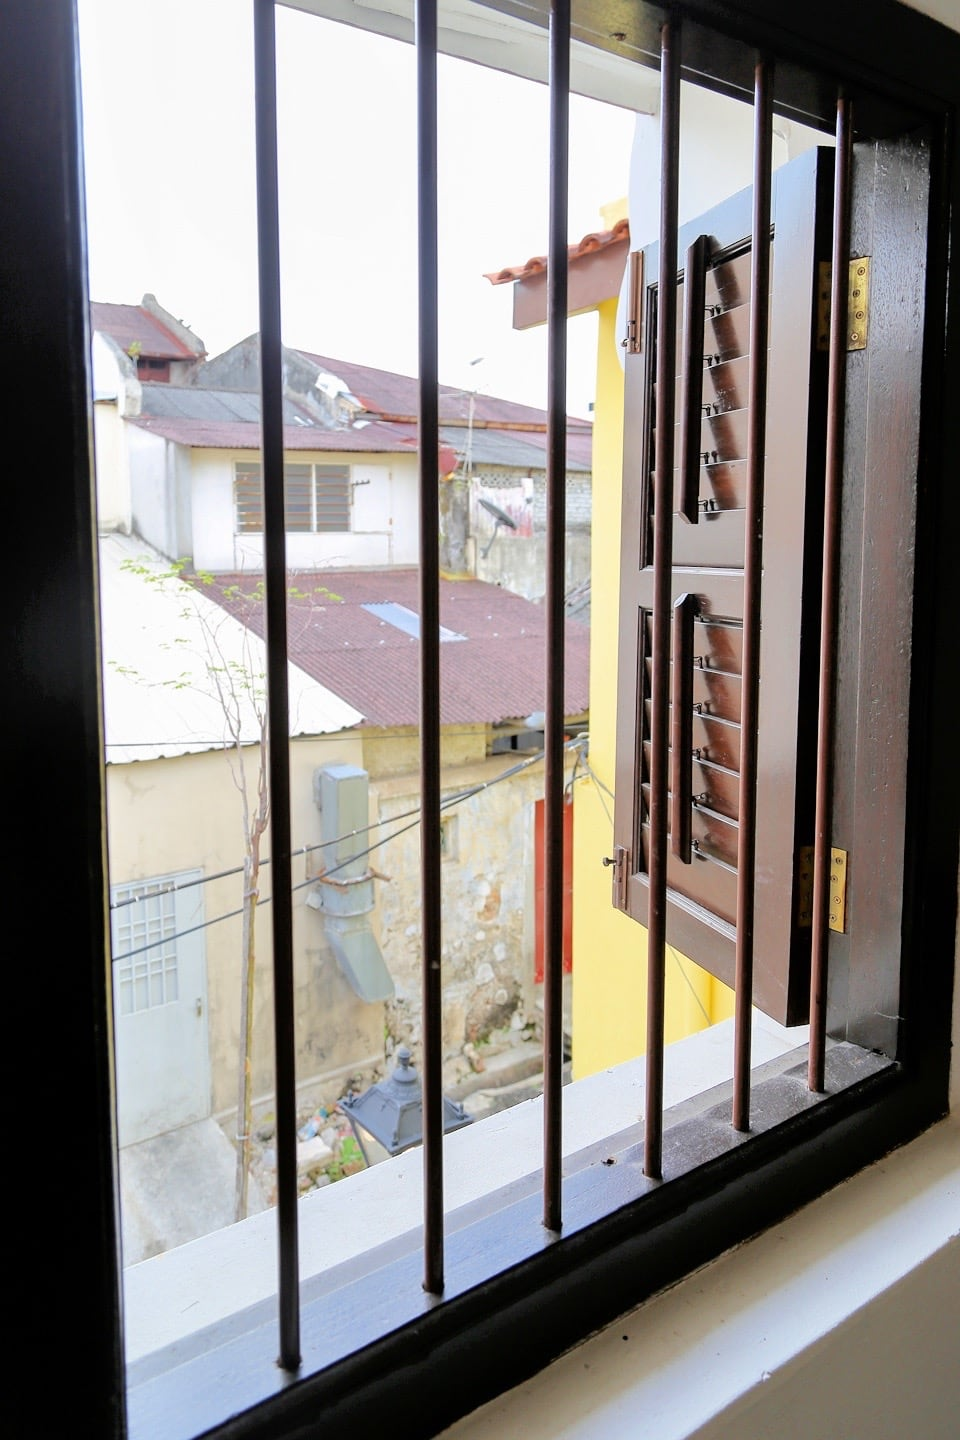 George Town Penang lodging Airbnb colonial row house